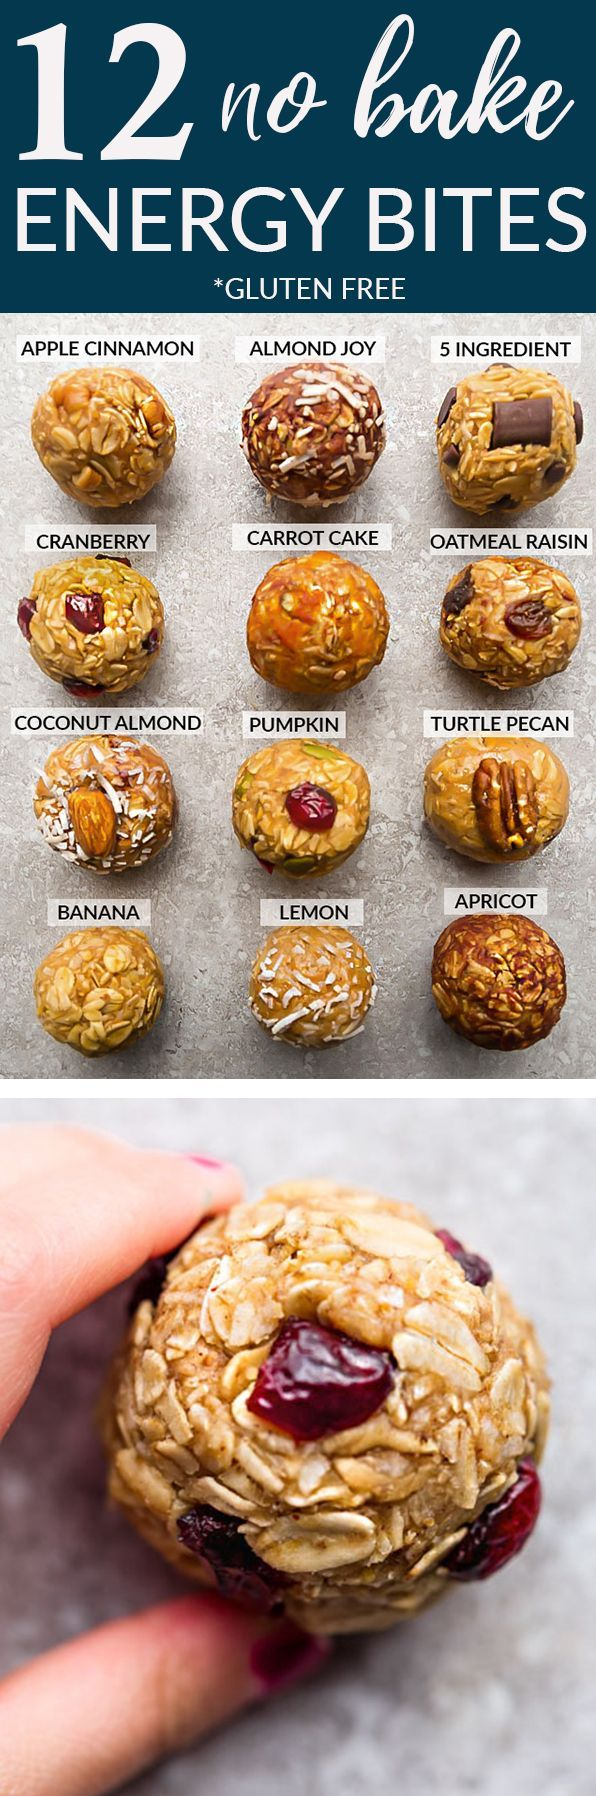 76251 best wow food group board images on pinterest kitchens no bake energy bites 12 different ways the perfect easy and healthy no bake tasty gluten free snacks for on the go or after a workout best of all most forumfinder Choice Image